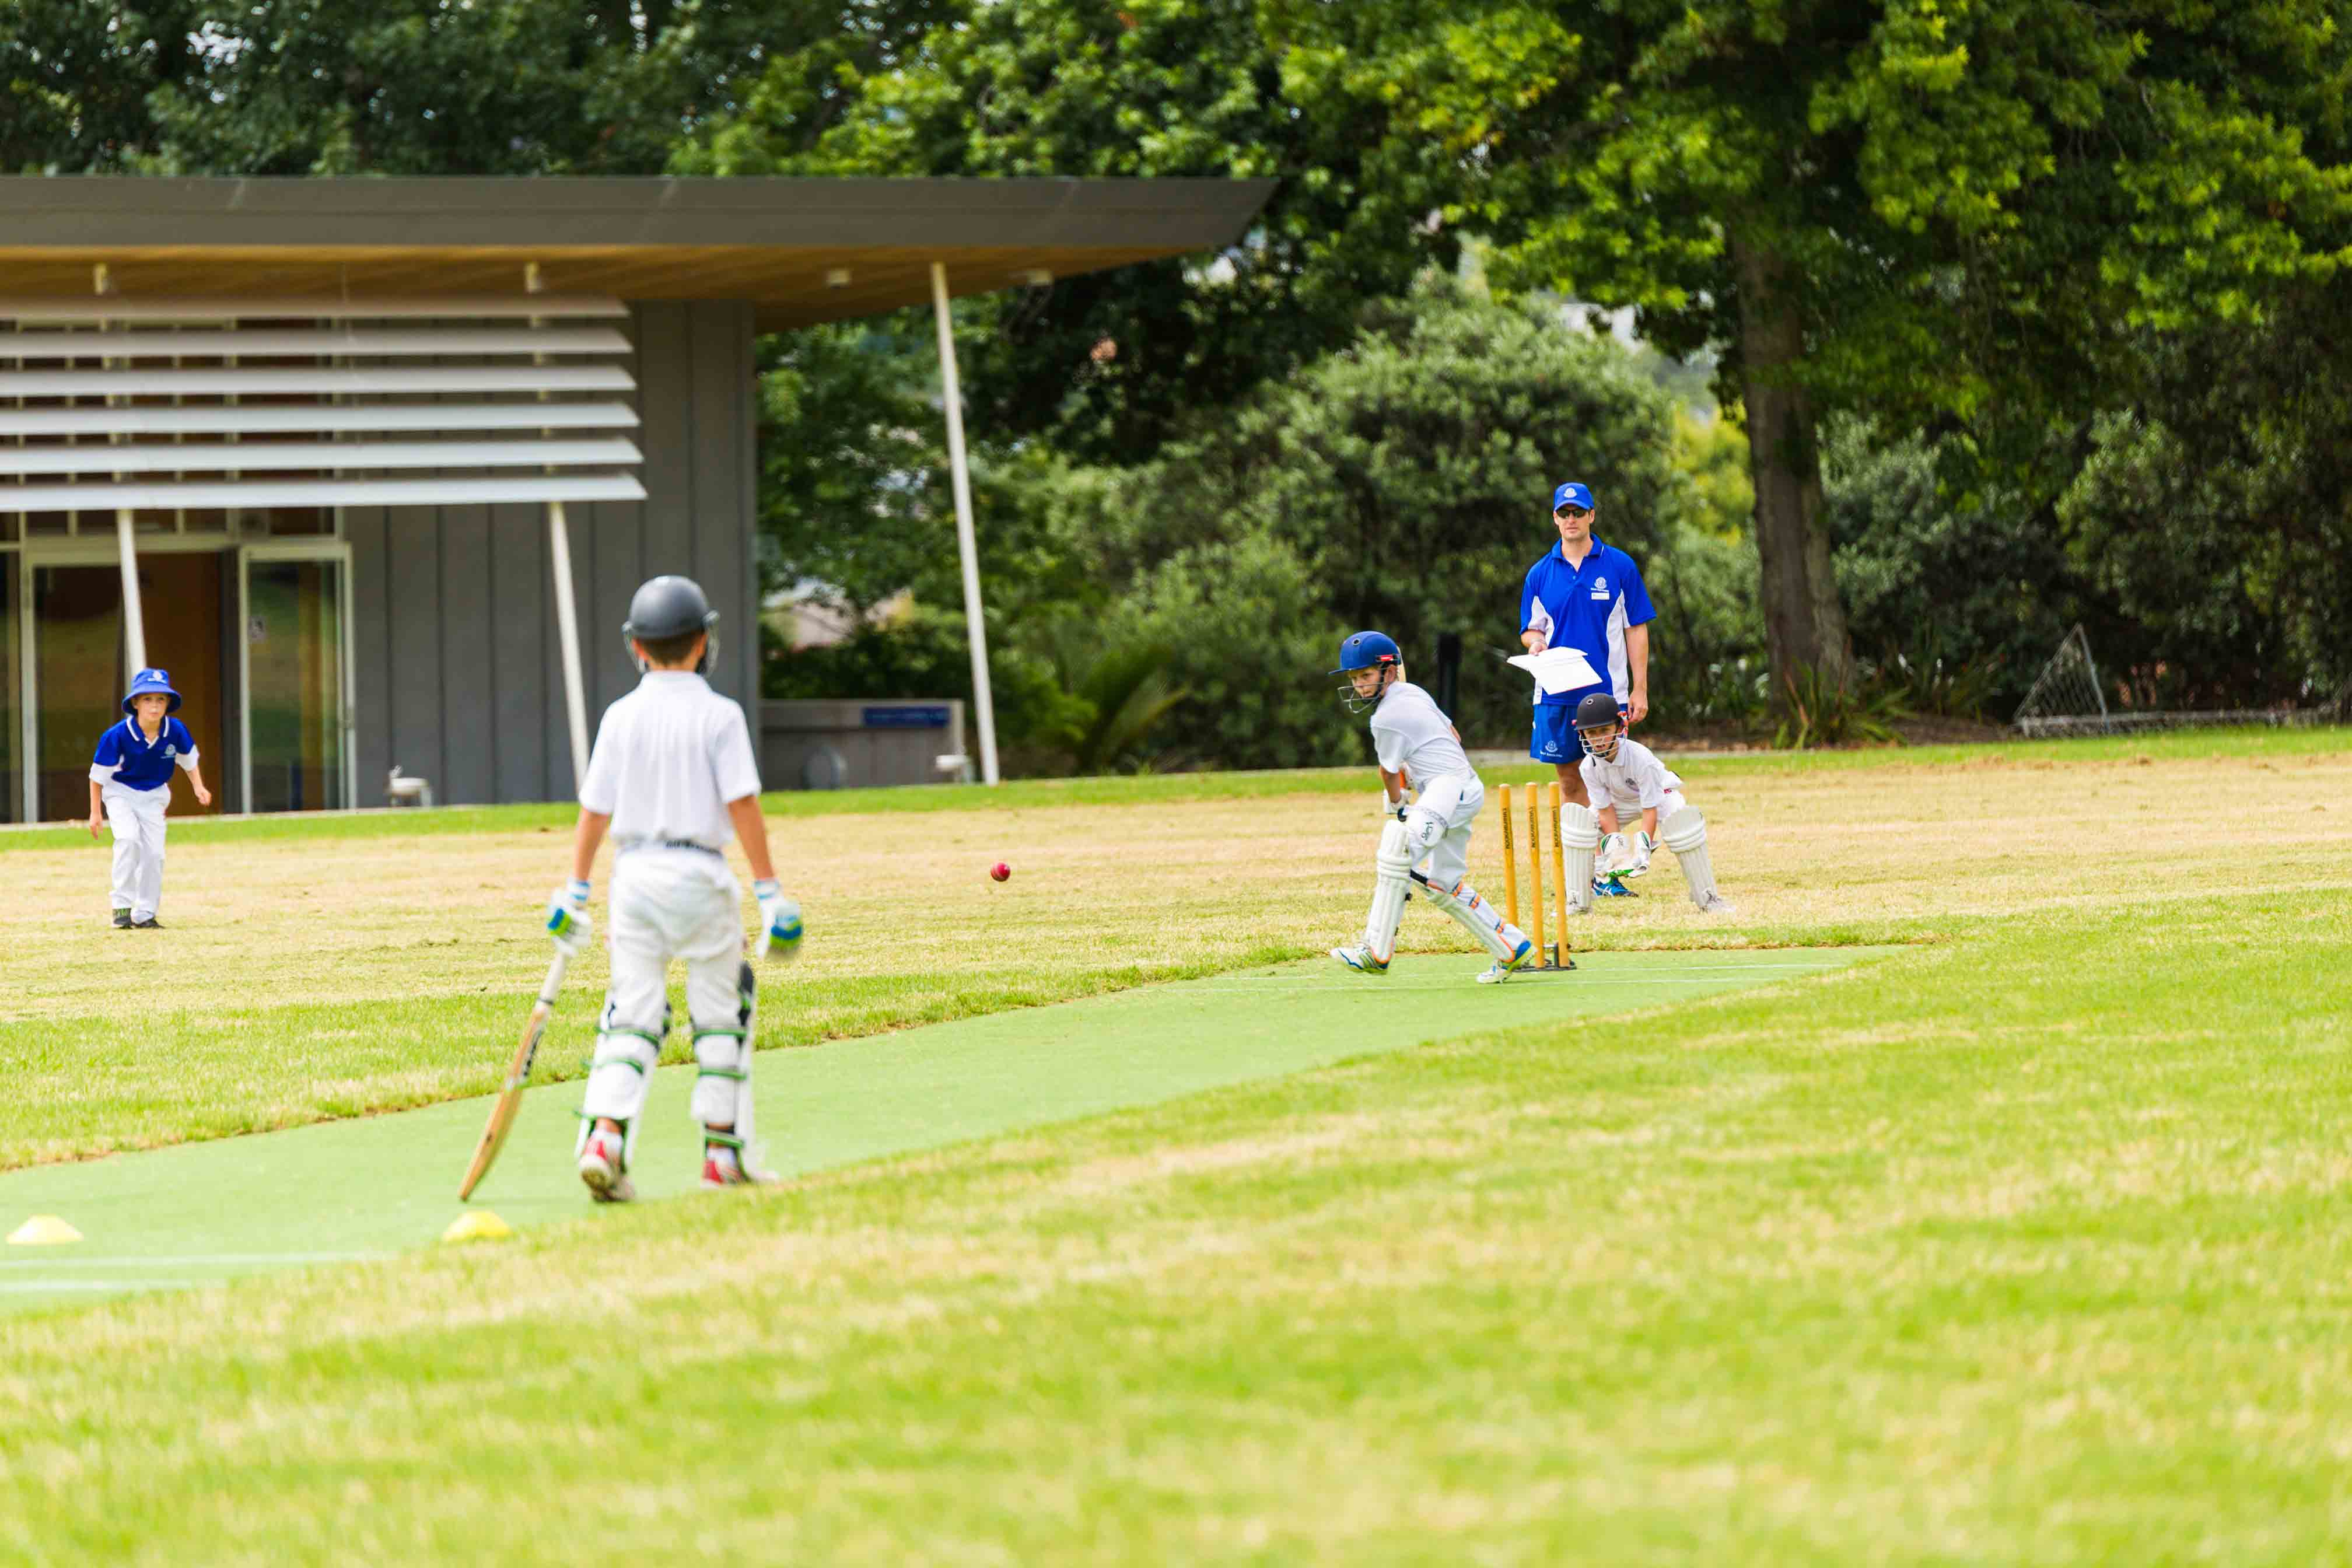 Saint-Kentigern-Boys'-Schoo-Sport-Cricket.jpg